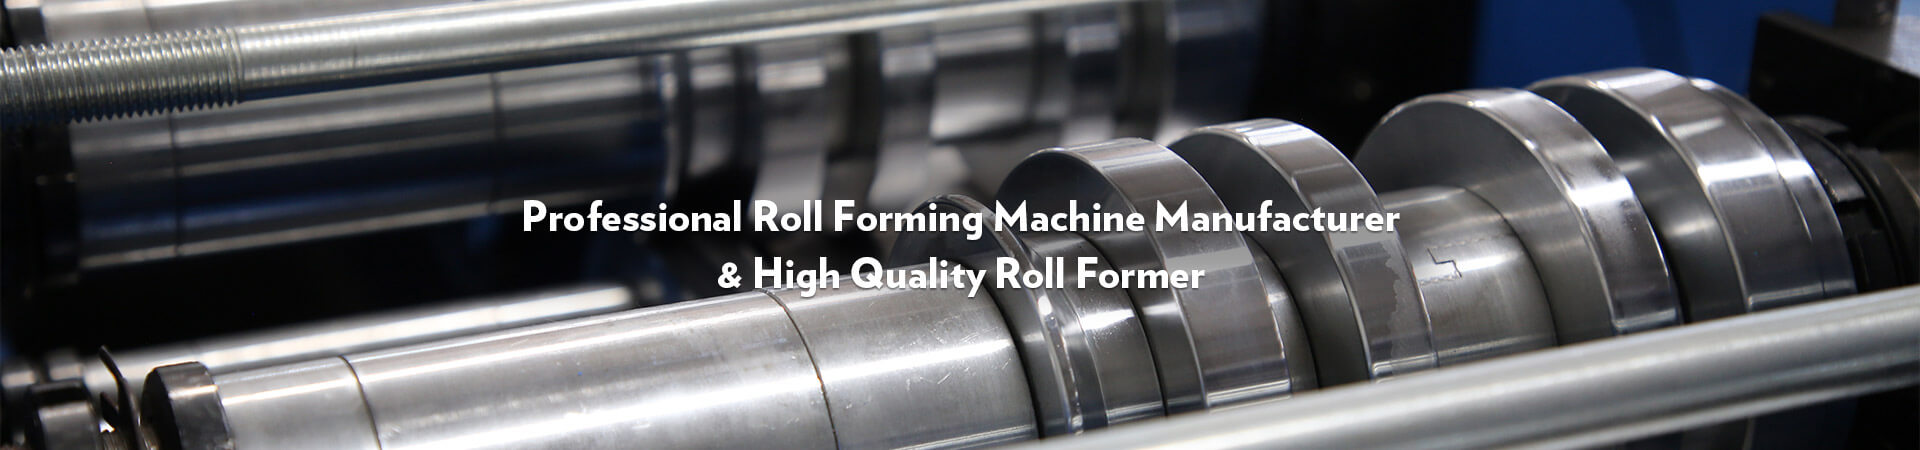 Professional Roll Forming Machine Manufacturer & High Quality Roll Former